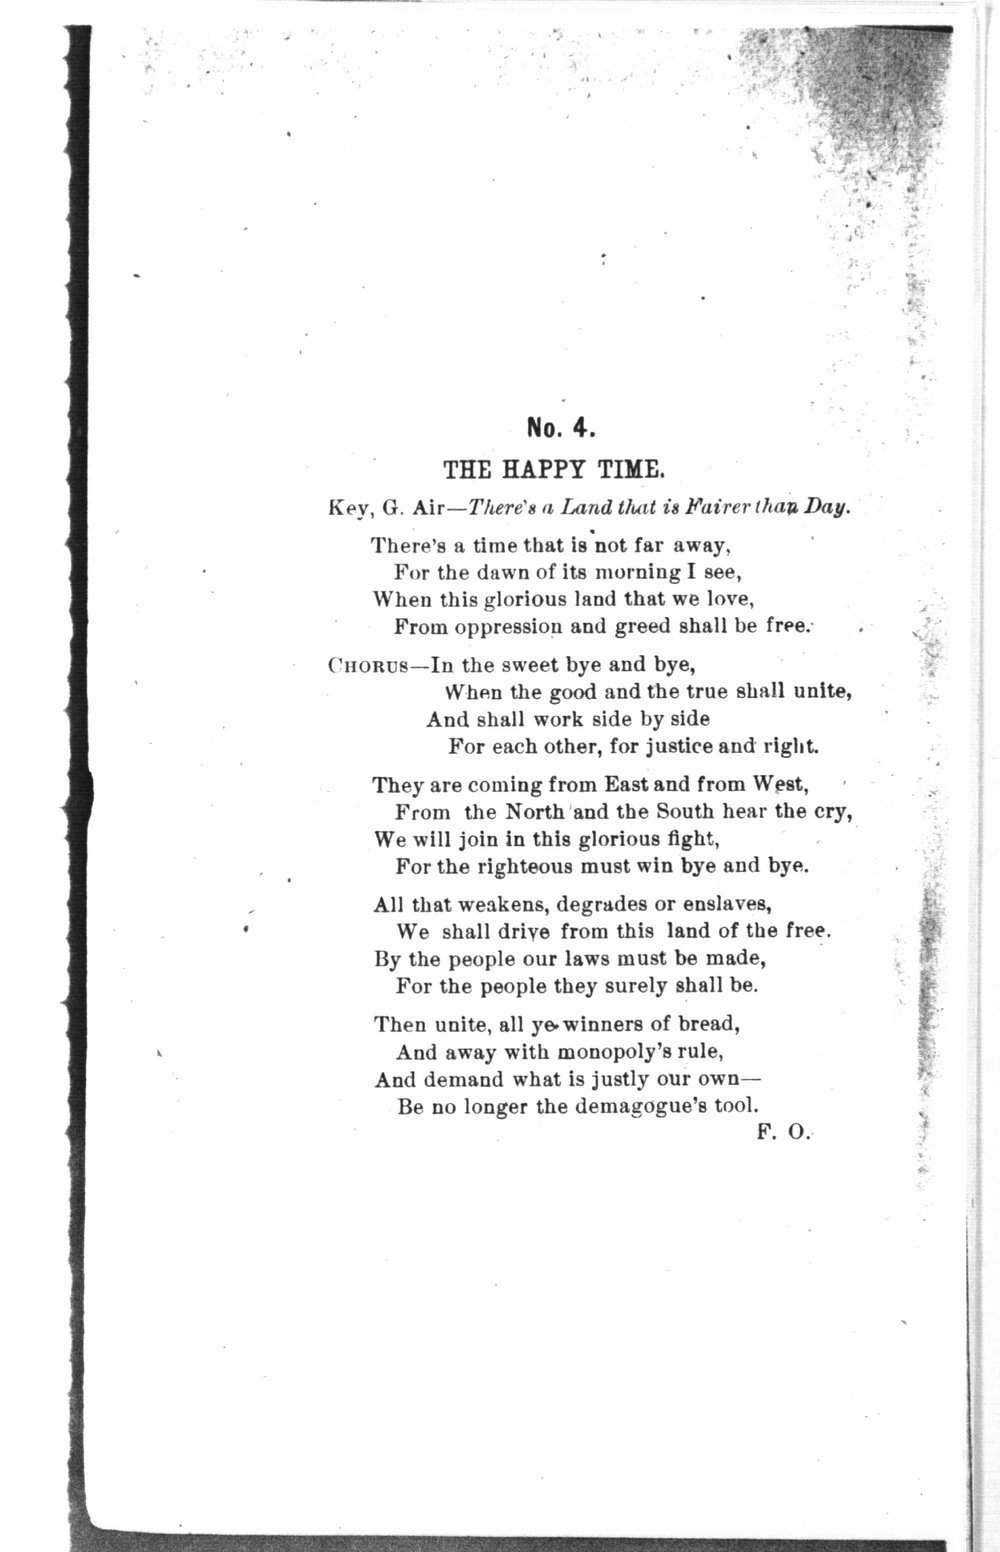 The mite:  Farmers' and Laborers' Union songs for national, state, county and subordinate unions - No. 4